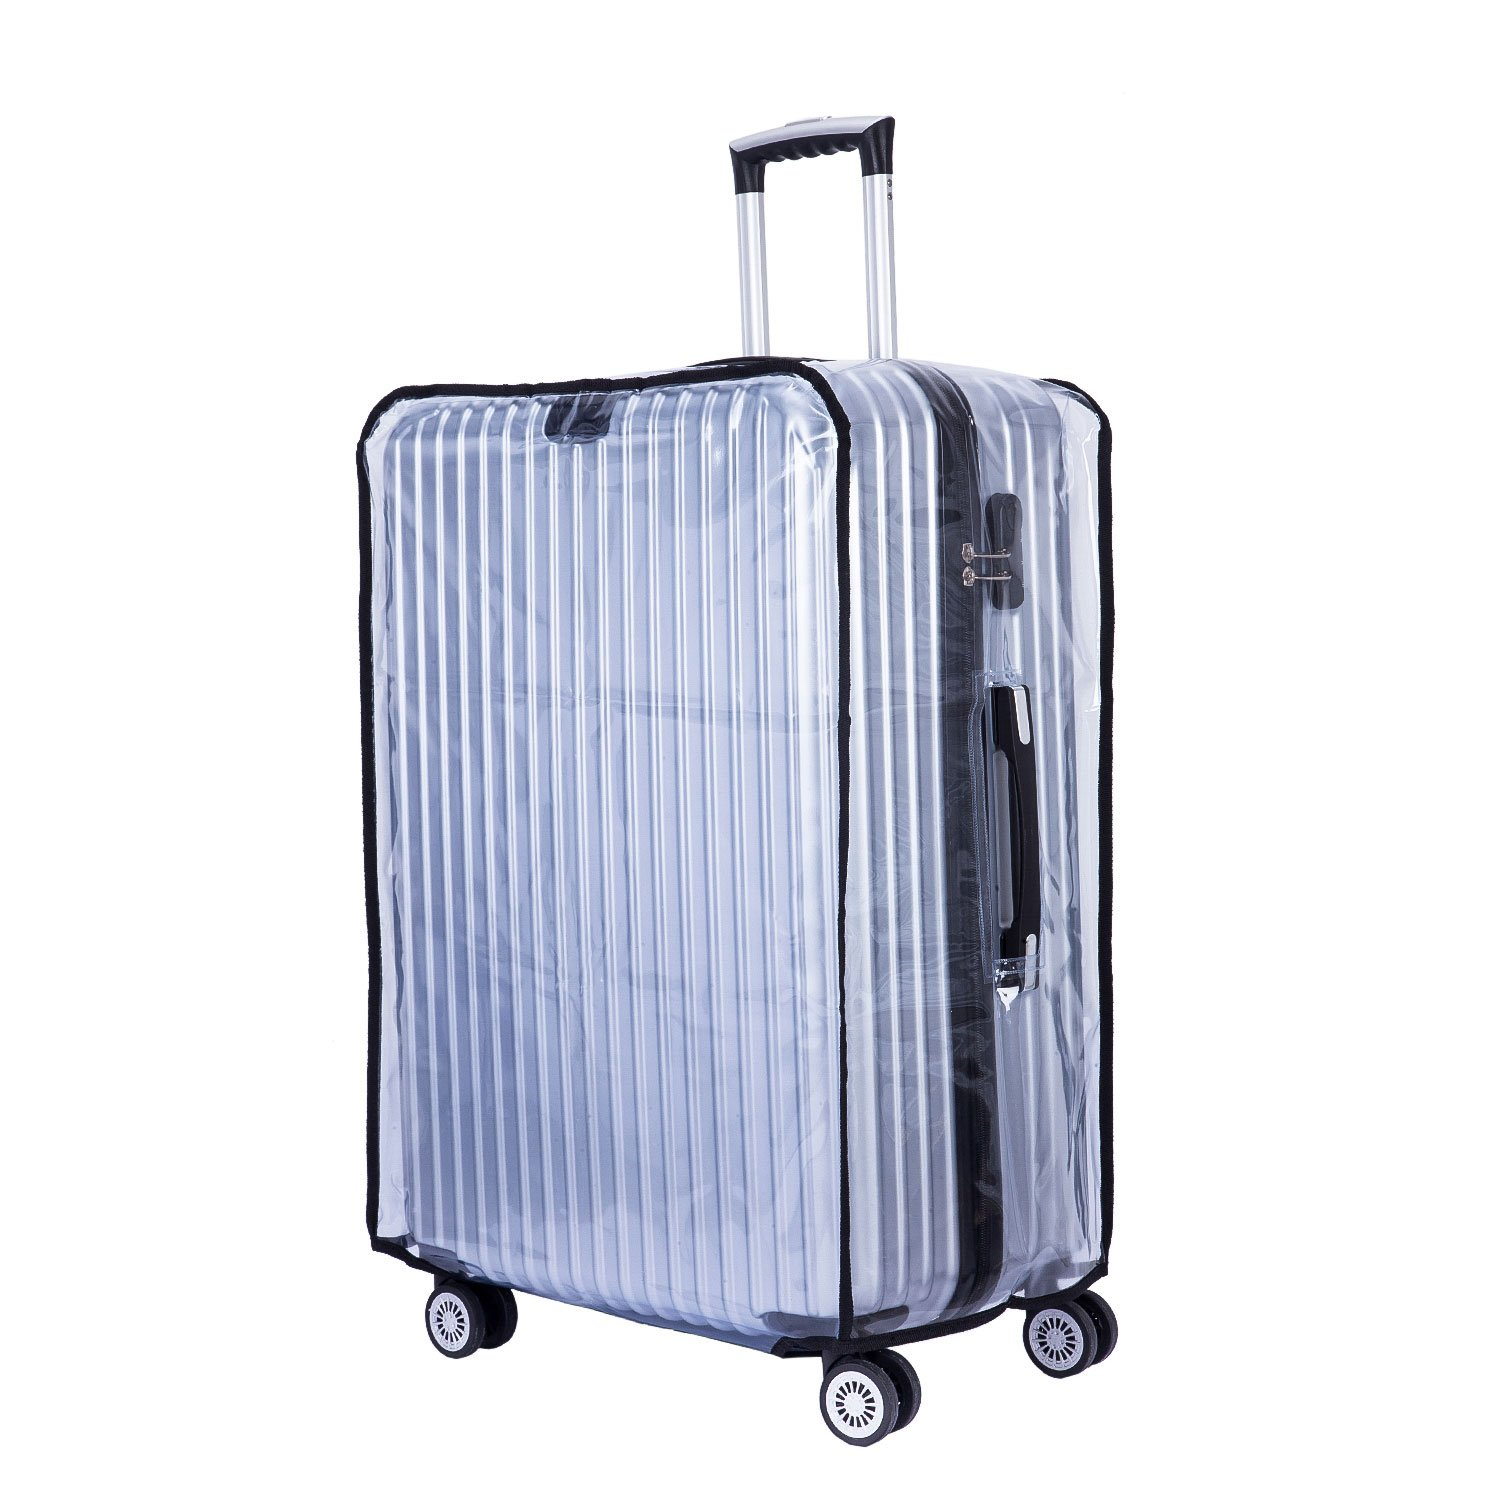 BlueCosto PVC Luggage Protector Travel Suitcase Cover 28'' (19.7''L x 12.2''W x 28.3''H) by BlueCosto (Image #2)